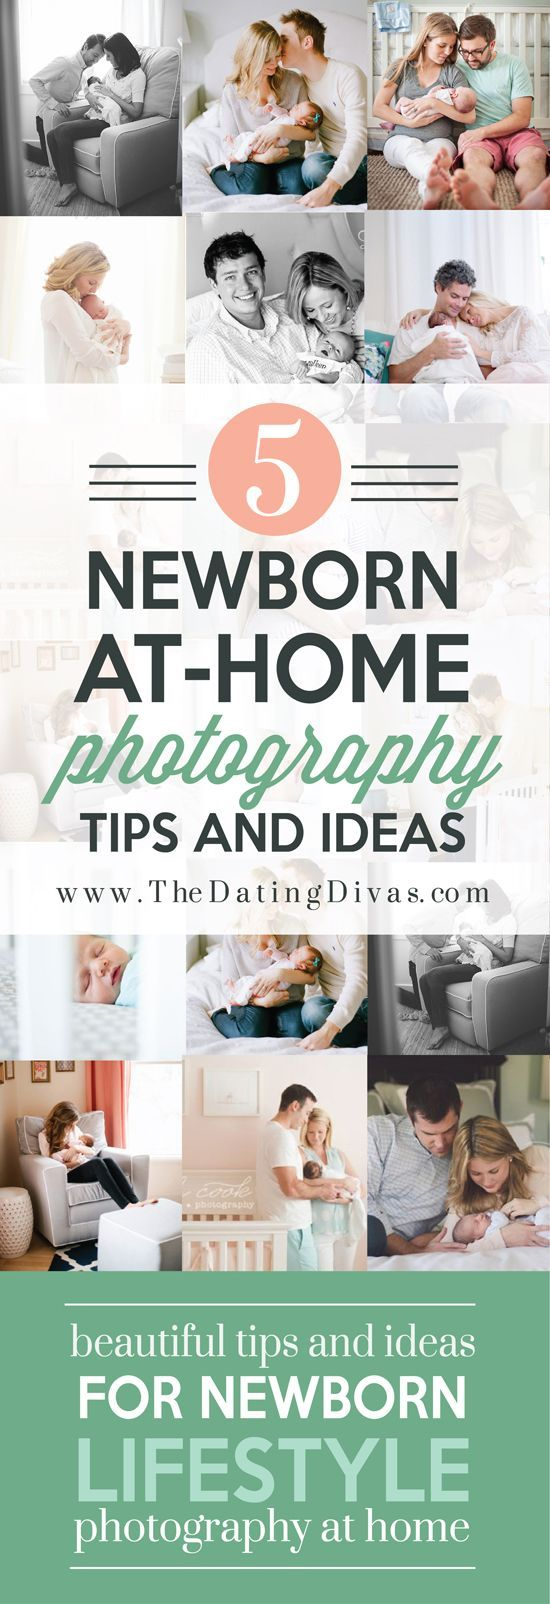 Great post @thedatingdivas  TONS of newborn photography inspiration and ideas in this post. Good ideas for beautiful lifestyle photos at home! I don't want to forget-pinning for later. www.TheDatingDivas.com